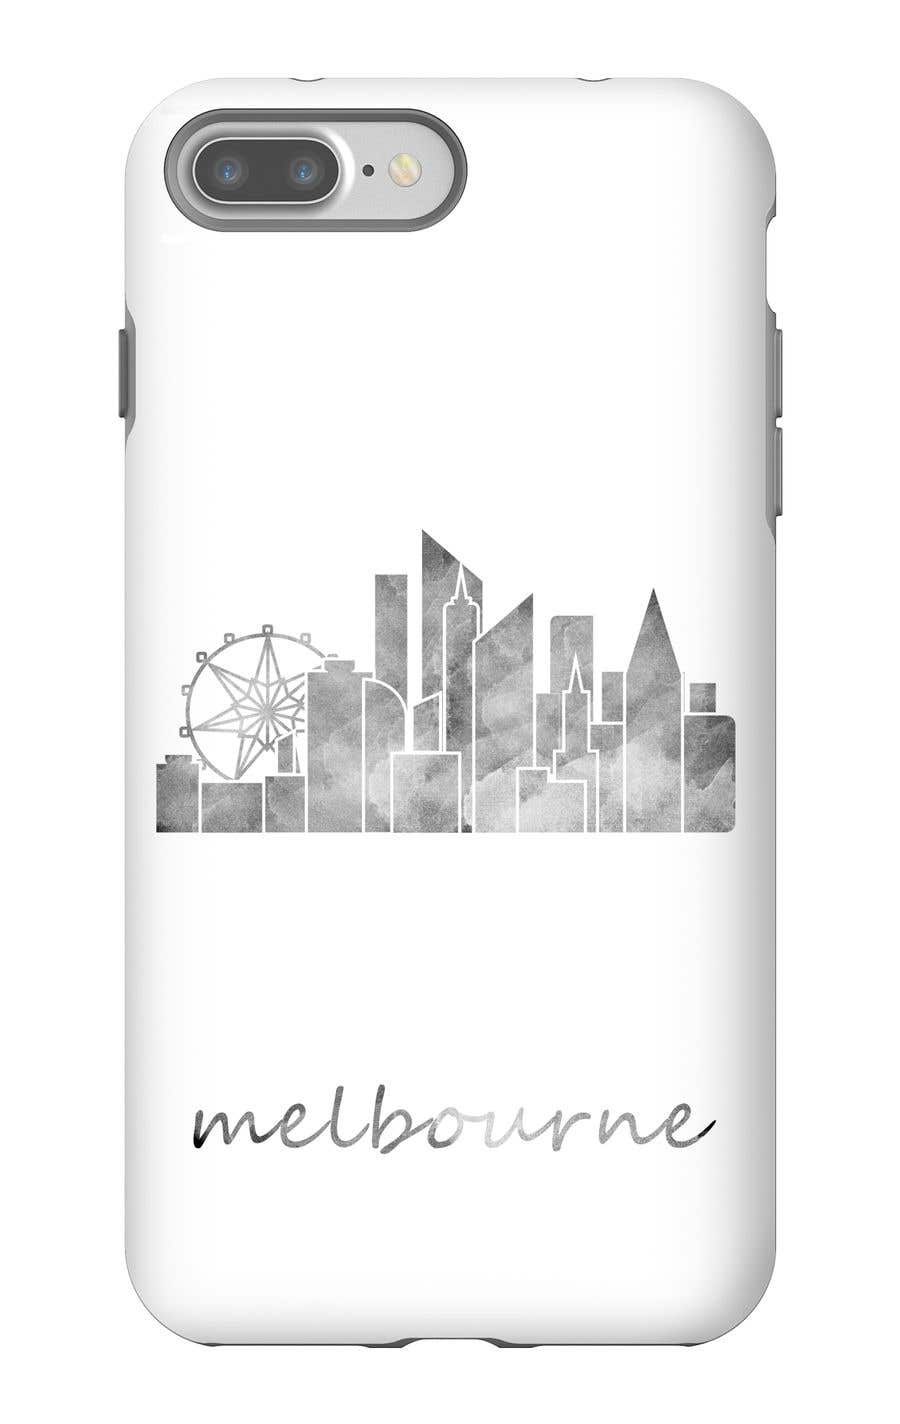 Konkurrenceindlæg #12 for Design a phone case with a minimal skyline of a famous city.